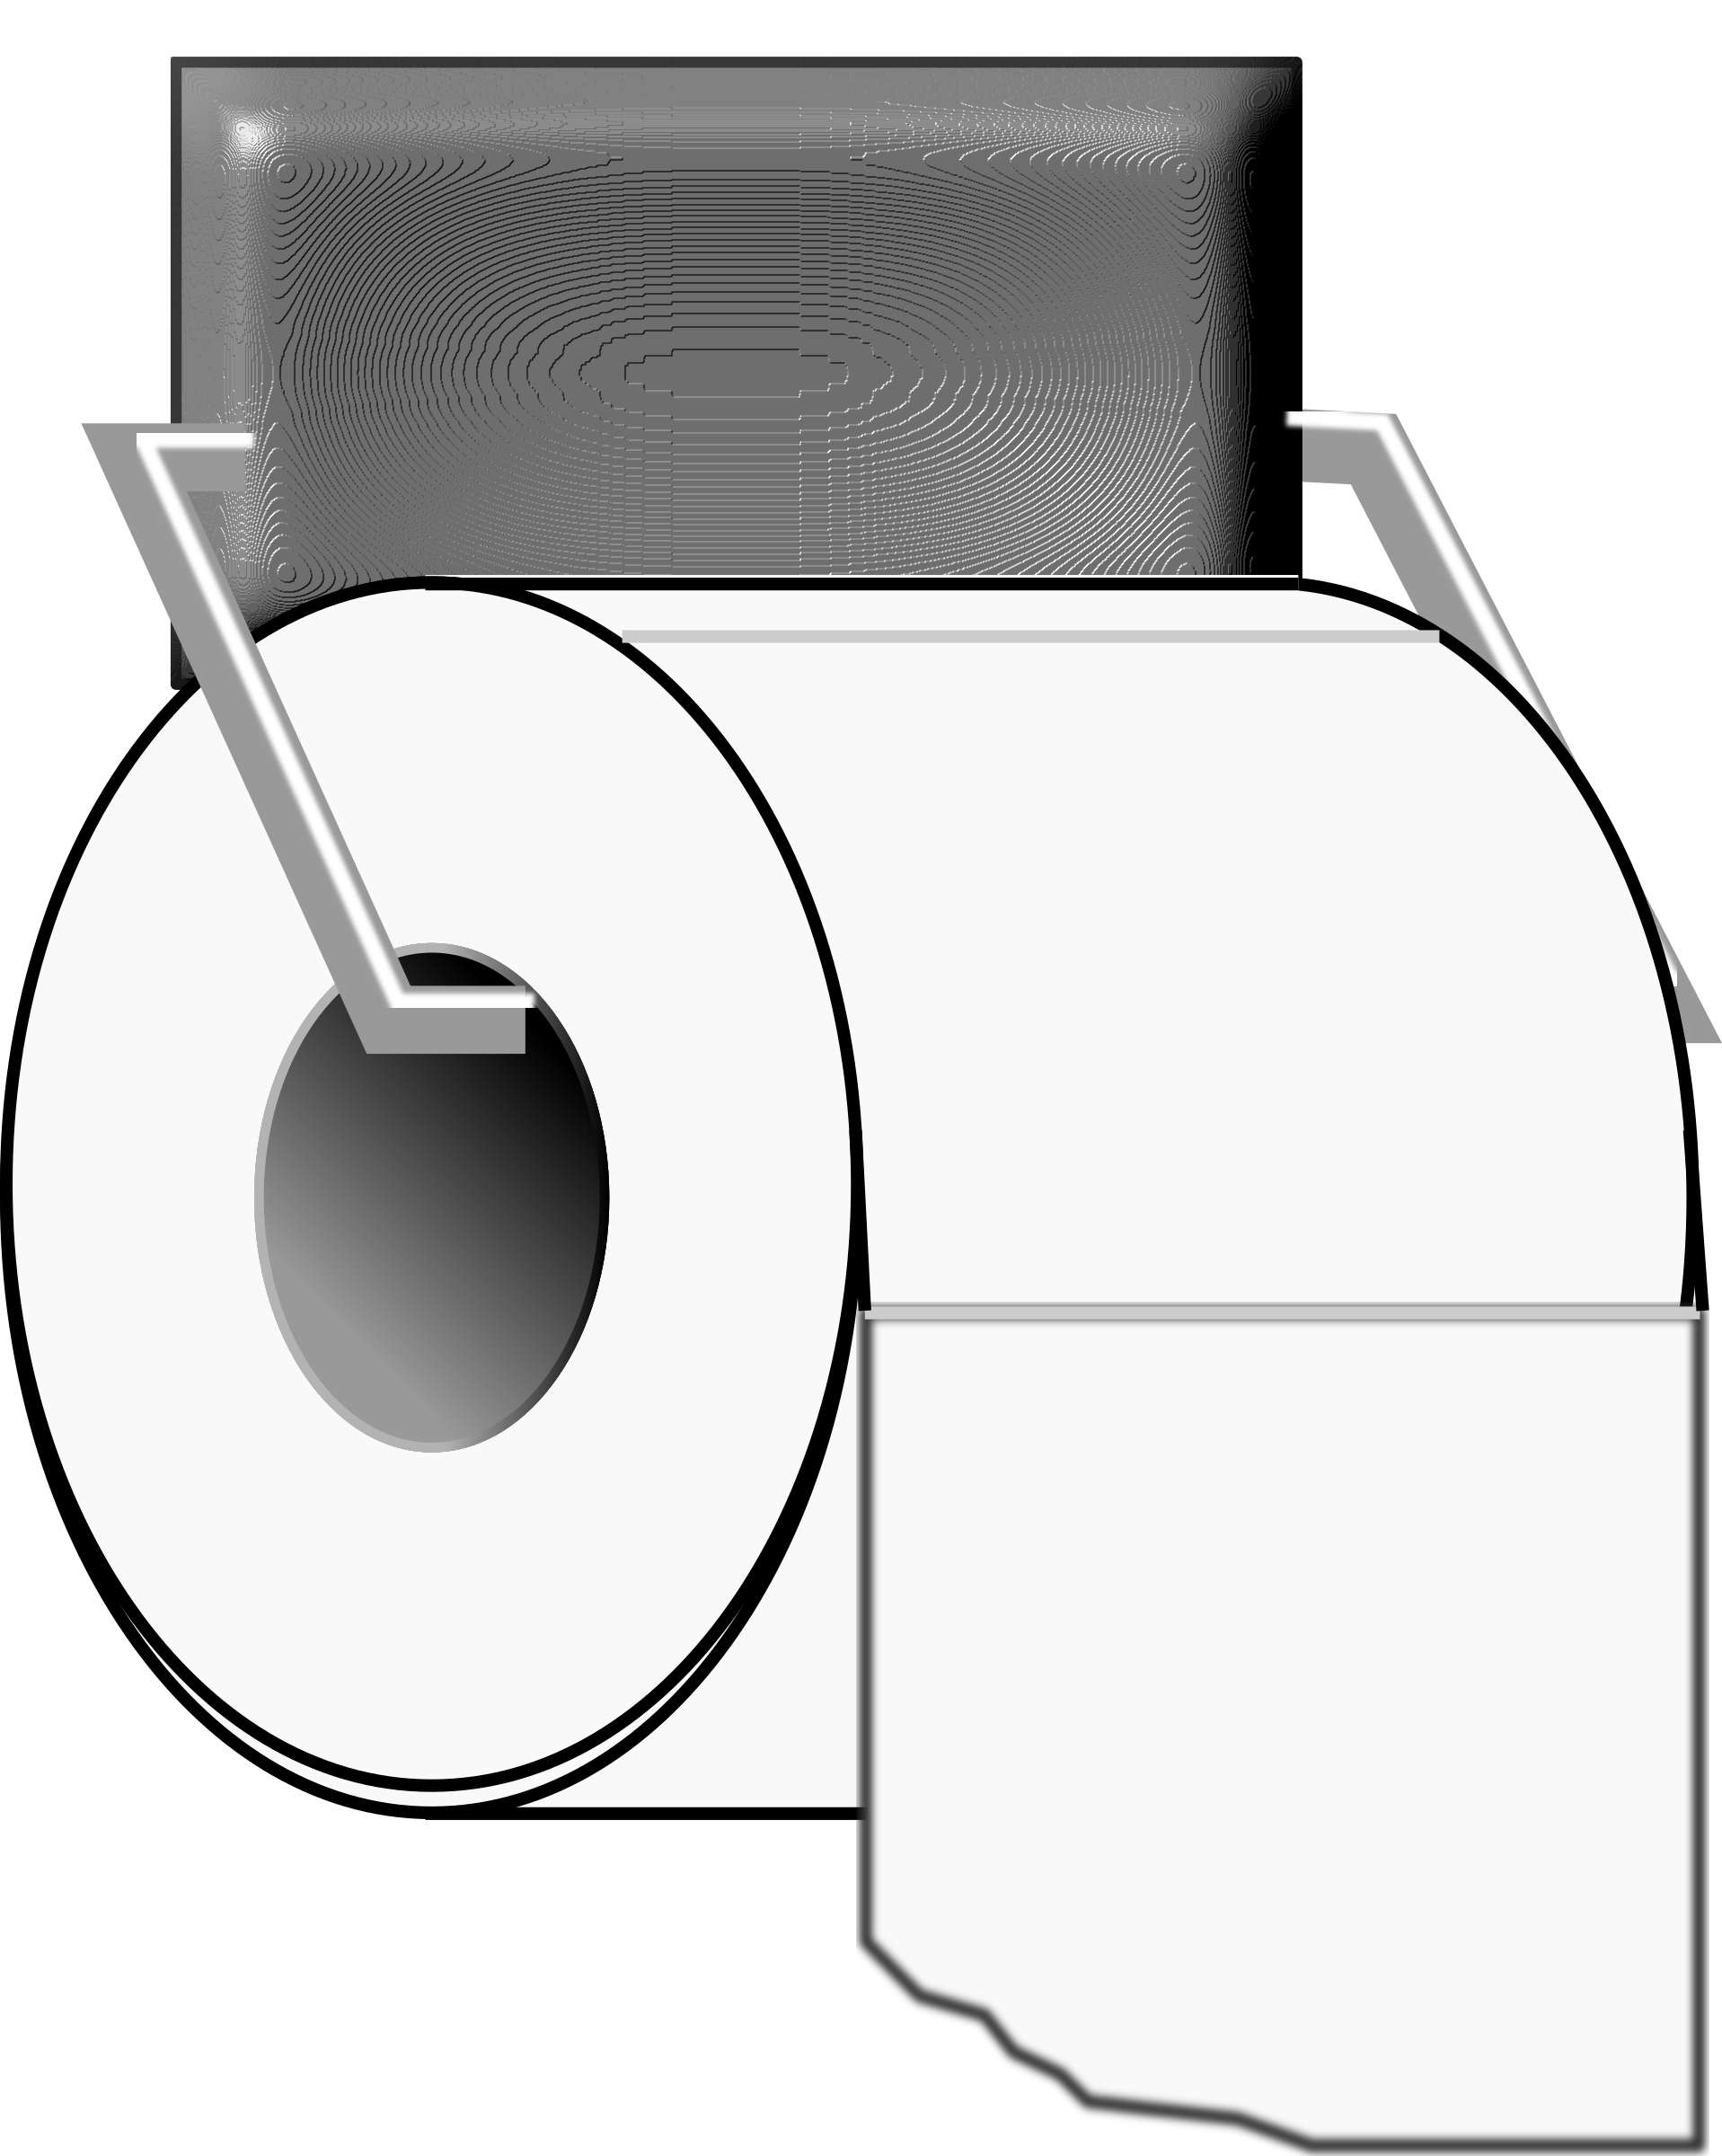 Roll of Toilet Paper by algotruneman